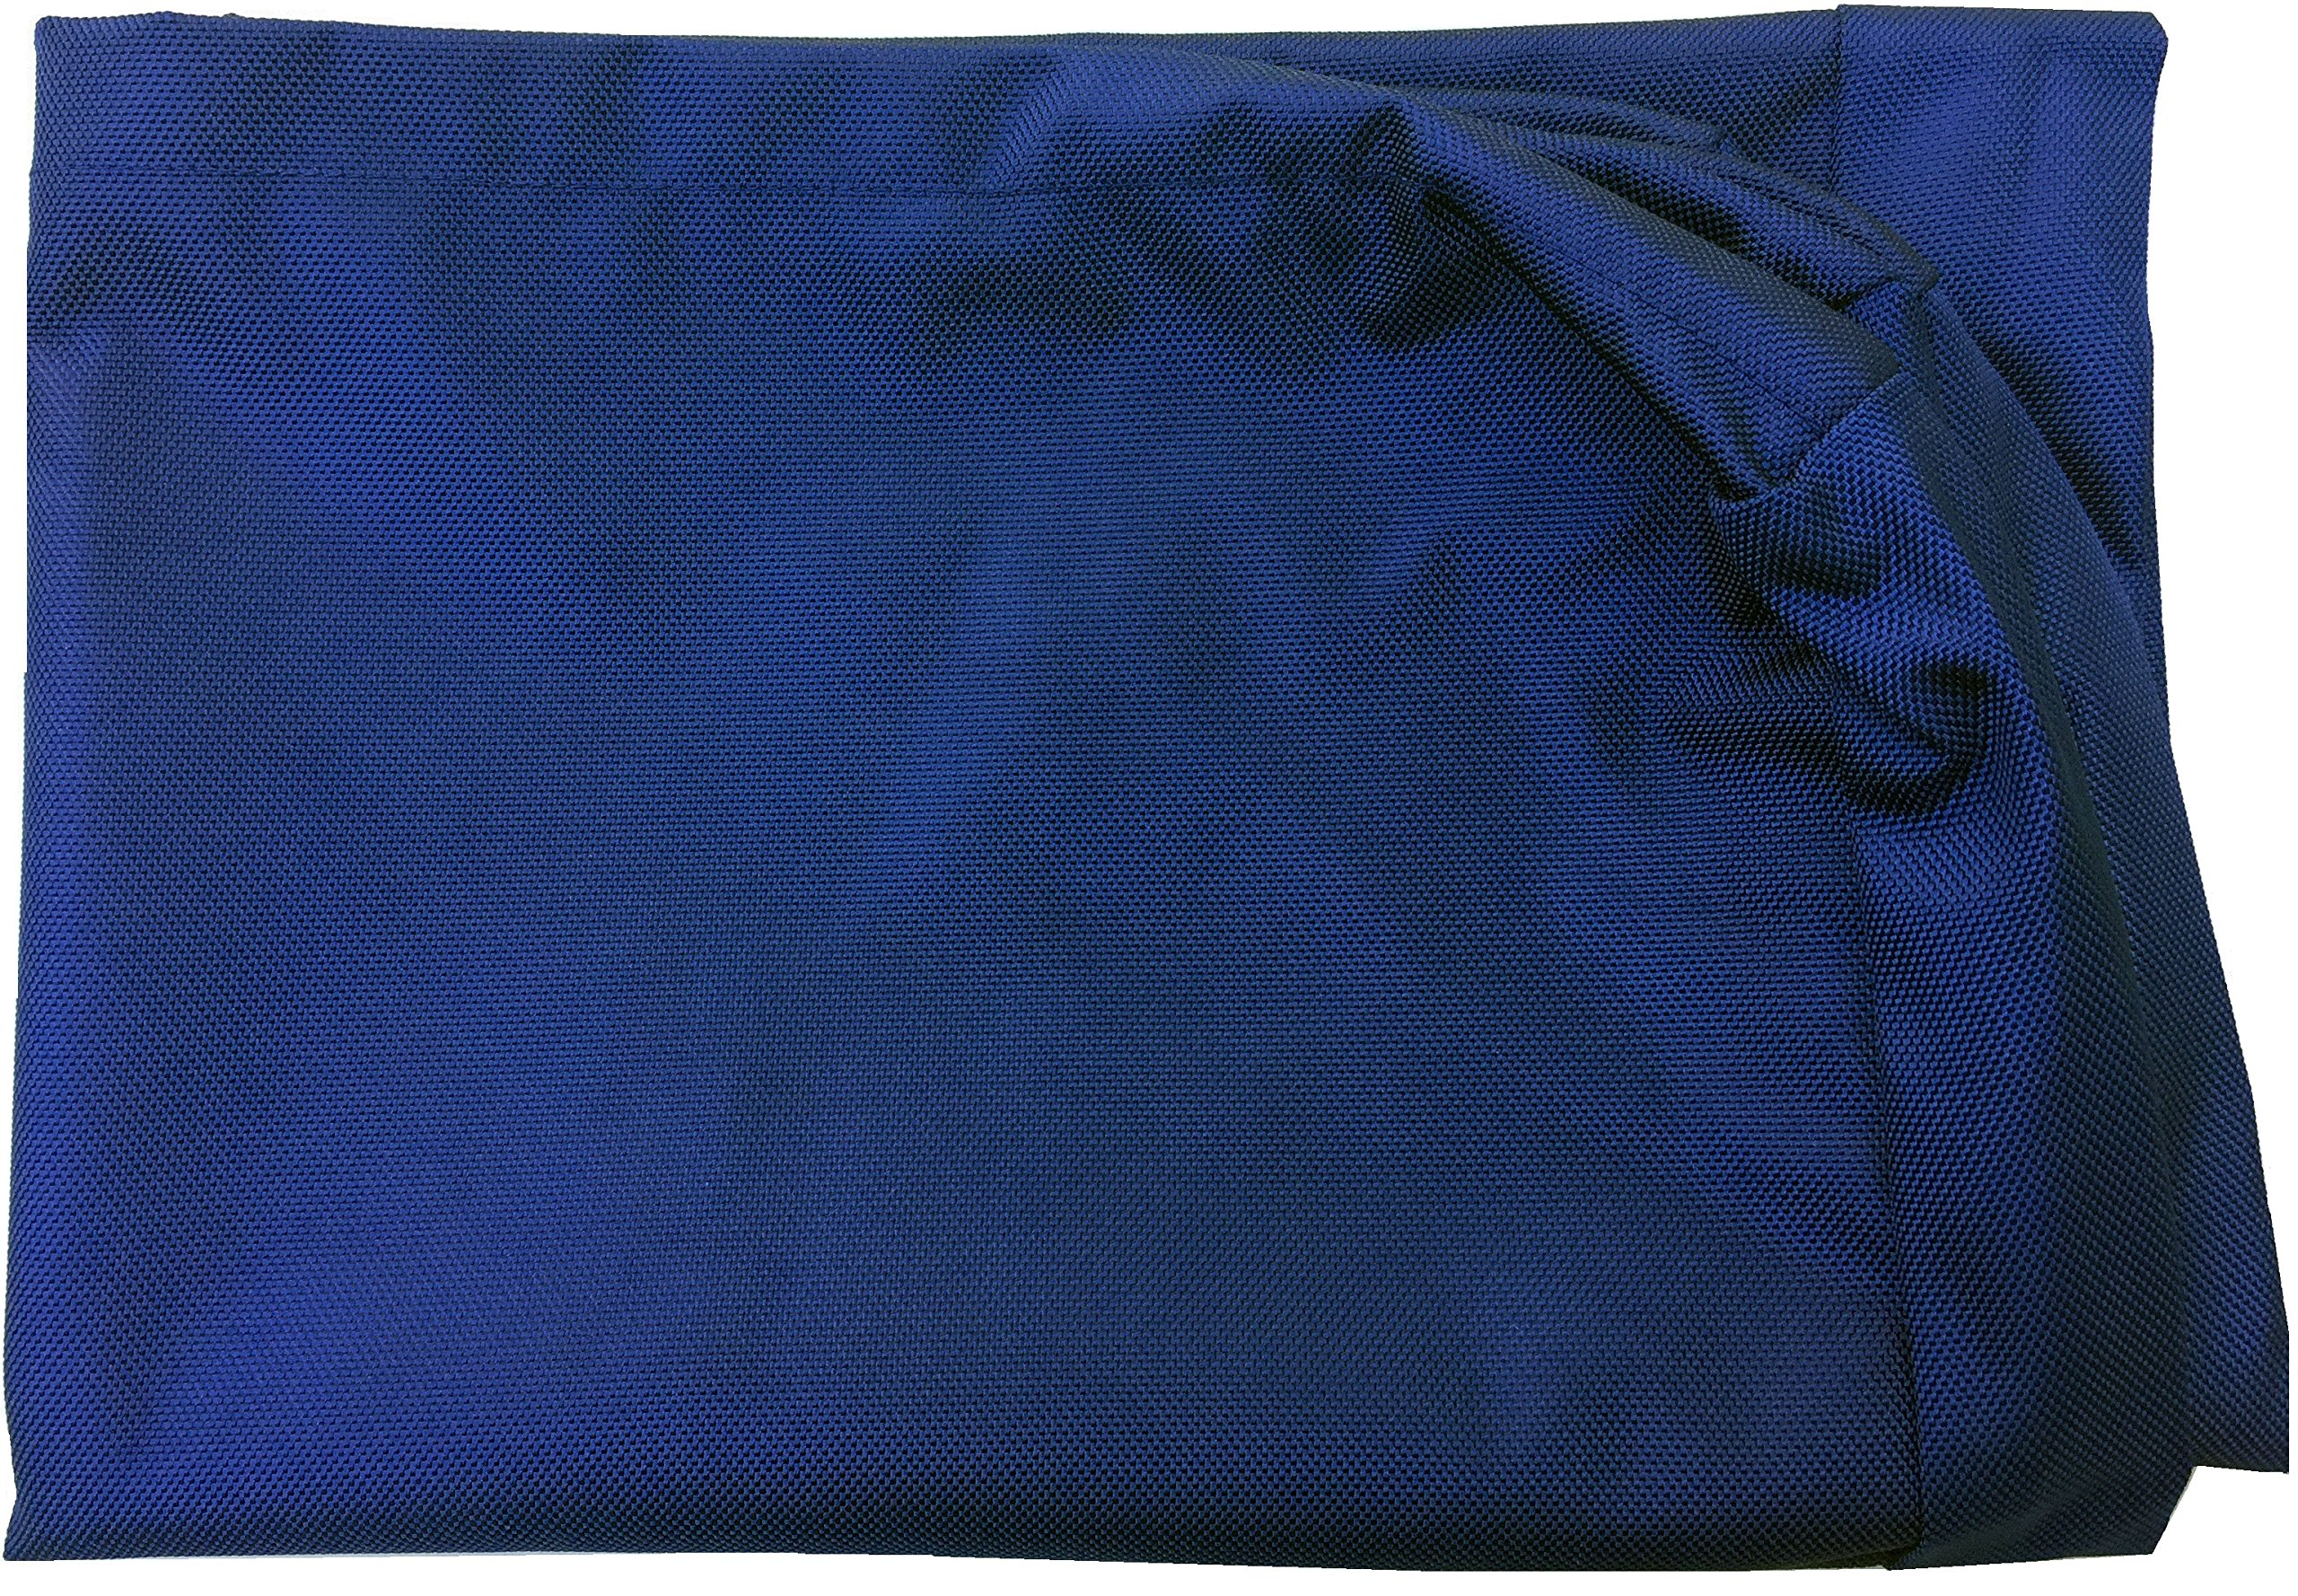 Dogbed4less Large 1680 Ballistic Heavy Duty Dog Pet Bed External Zipper Duvet Cover - Replacement cover only, 41X27X4 Inches, Navy Blue